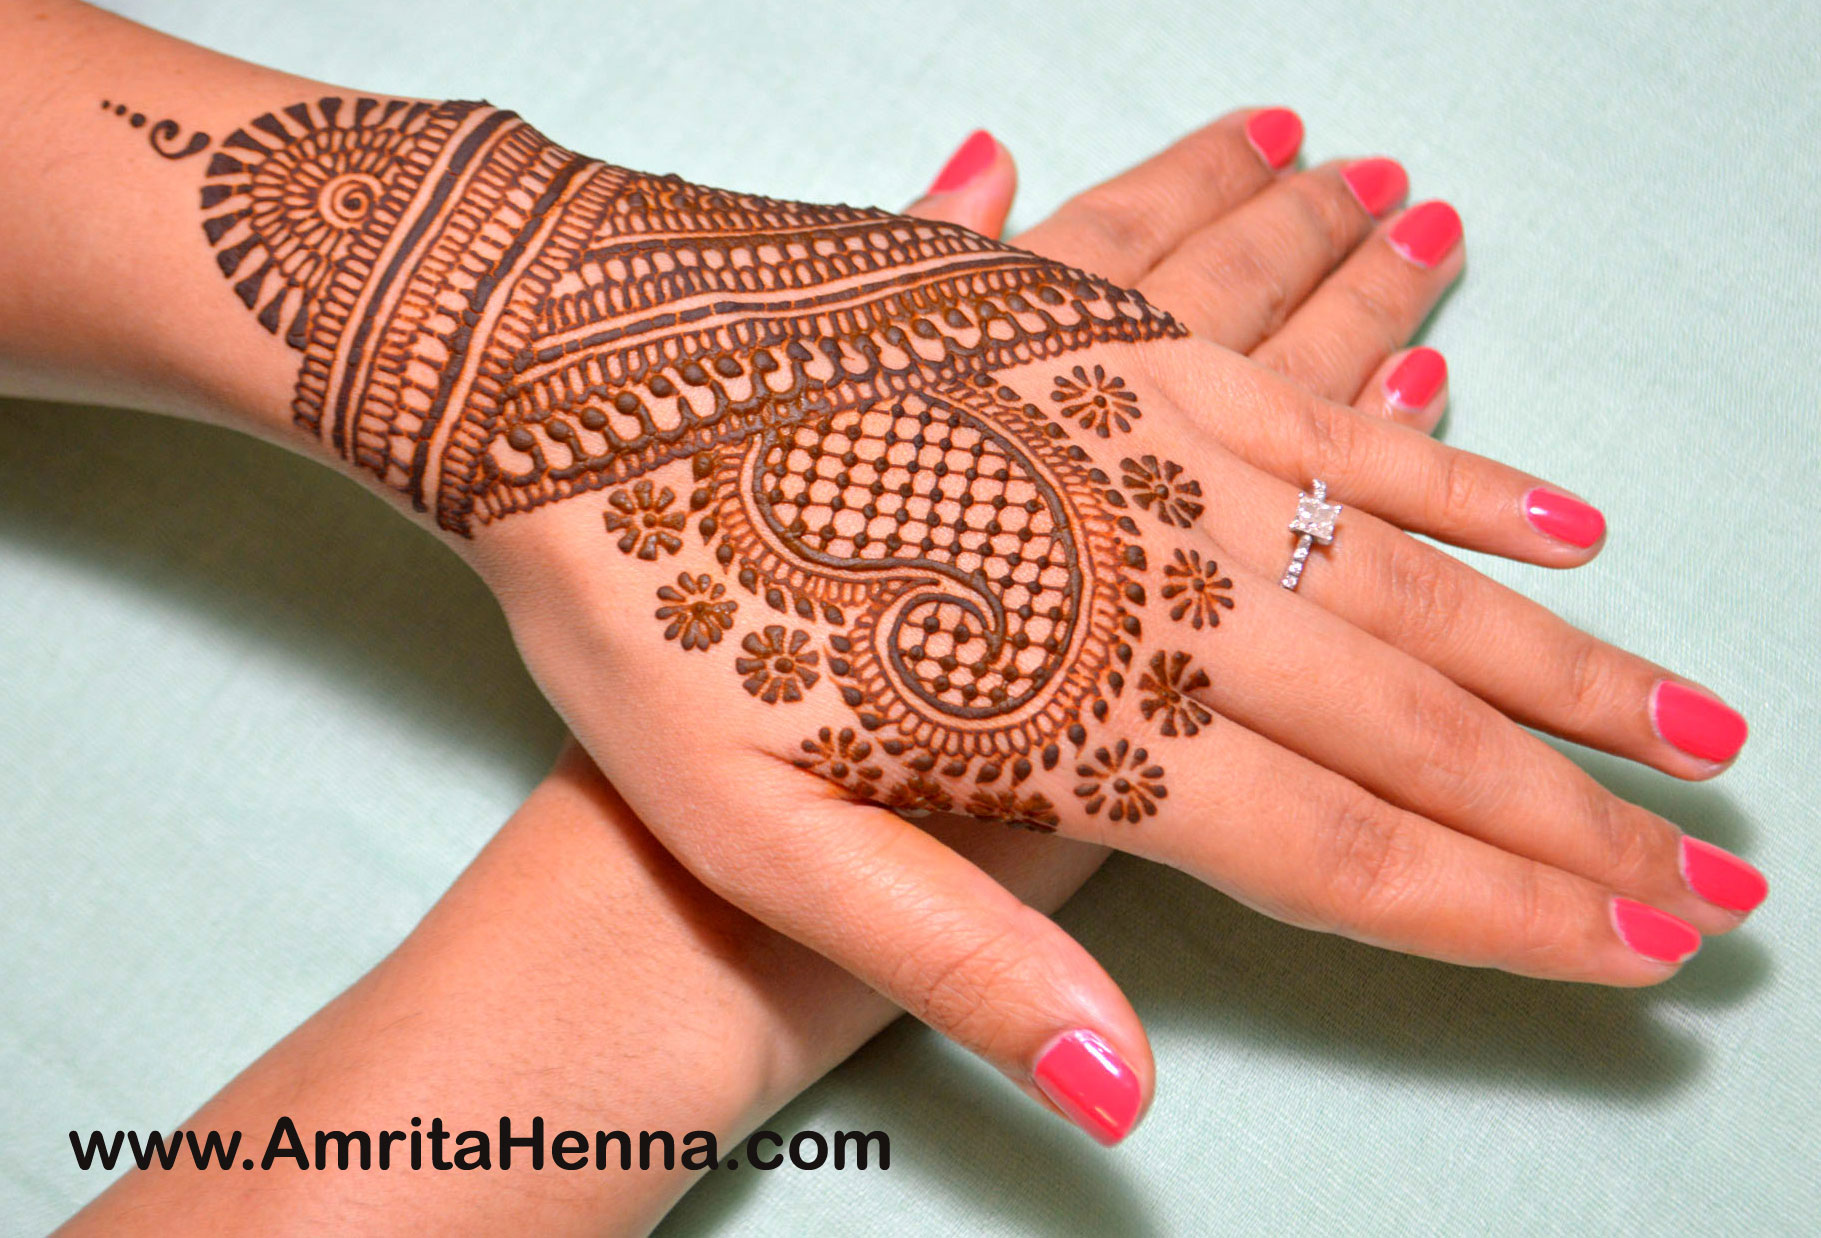 TOP 5 EASY PAISLEY HENNA MEHNDI DESIGNS - 5 BEST STUNNING PAISLEY MEHENDI DESIGN IDEAS - 5 AMAZING HENNA DESIGNS WITH PAISLEYS - TOP 5 LATEST PAISLEY MEHENDI - 5 PAISLEY HENNA MEHNDI DESIGNS YOU CANT MISS - BEST 5  PAISLEY HENNA DESIGN INSPIRATION - 5 PAISLEY MEHANDI DESIGNS FOR BEGINNERS - TOP 5 NEW AND UNIQUE PAISLEY HENNA MEHNDI DESIGNS FOR YOU - BEST 5 BEAUTIFUL PAISLEY MEHENDI DESIGNS FOR BEGINNERS - TOP 5 AWESOME PAISLEY HENNA MEHNDI DESIGNS - TRADITIONAL PAISLEY MEHENDI DESIGNS LATEST - BEST 5 TRADITIONAL PAISLEY MEHENDI - MUST TRY PAISLEY HENNA - INDIAN MEHNDI DESIGNS PAISLEY IDEAS - TOP 5 INDIAN PAISLEY HENNA MEHNDI DESIGNS - BEST 5 INDIAN PAISLEY MEHANDI IDEAS